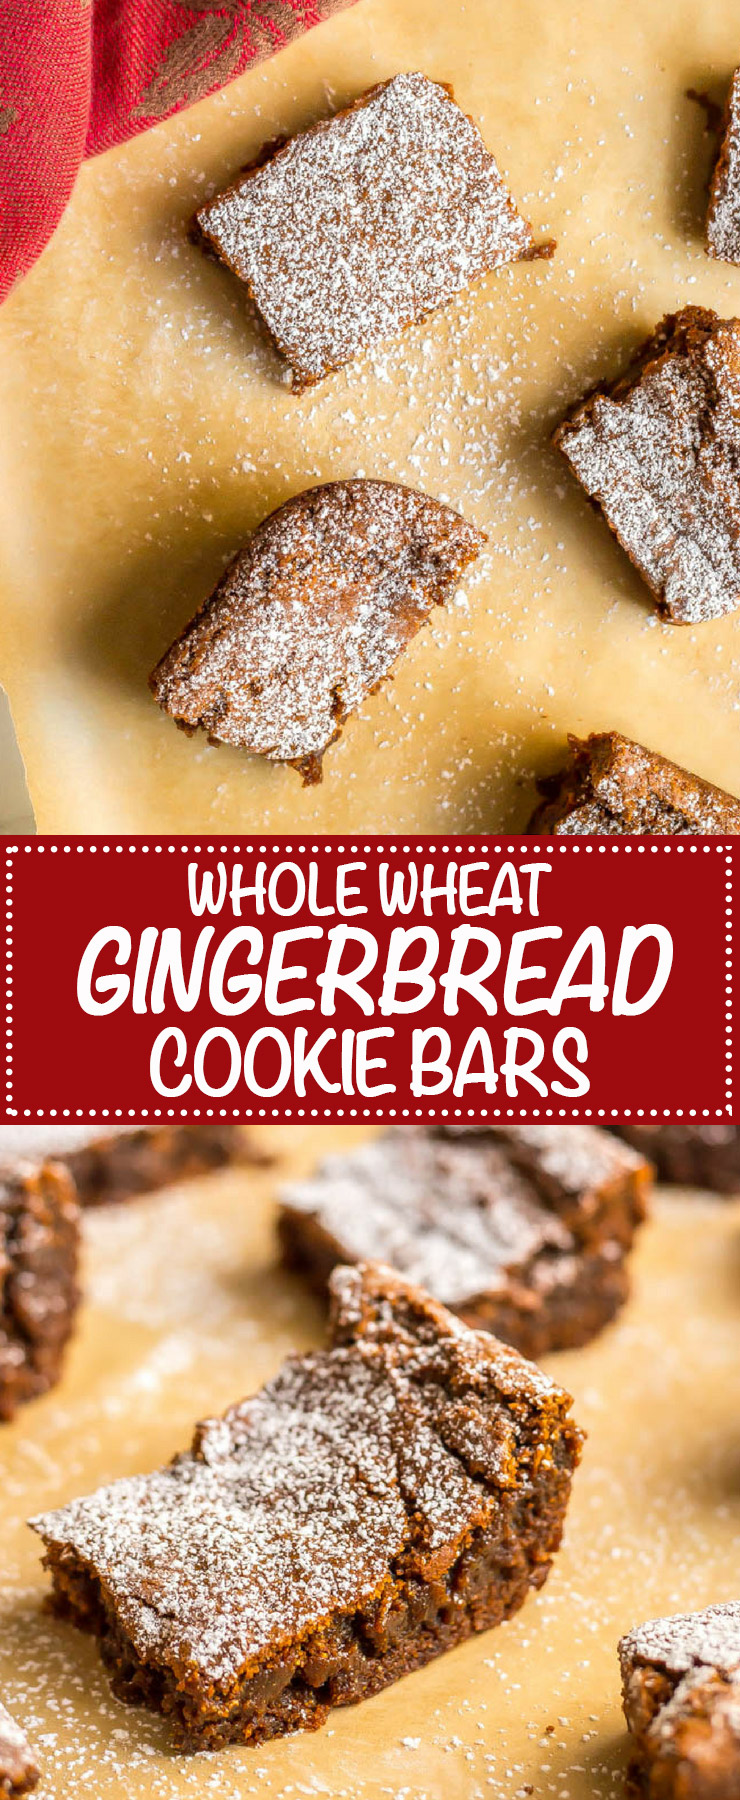 Whole wheat gingerbread cookie bars are soft and chewy and full of warm spices. They are perfect for holiday parties, bake sales and cookie exchanges! #holidaybaking #Christmas #gingerbread